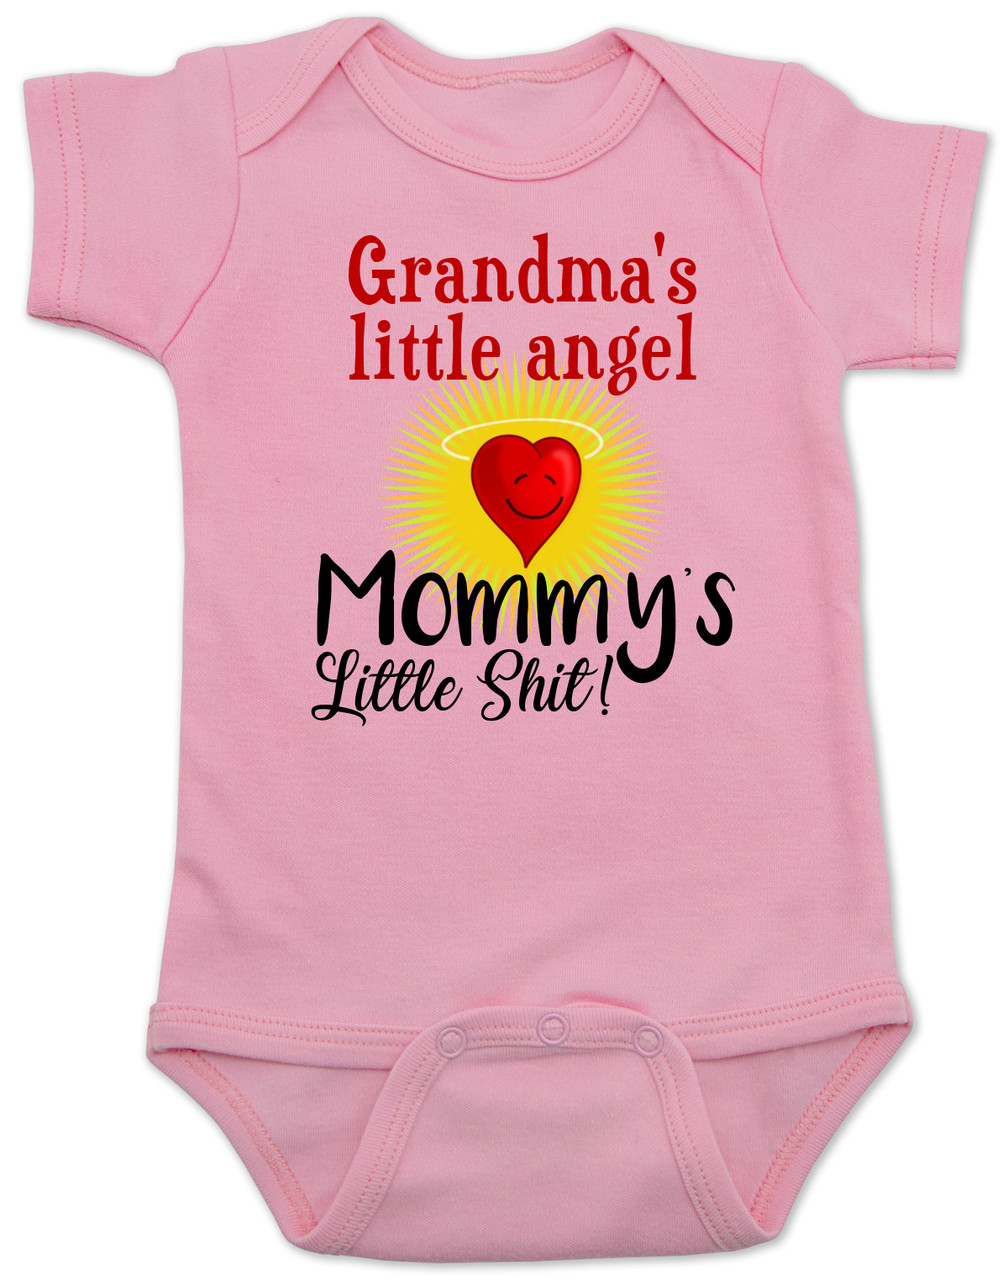 Vulgar baby badass baby threads mommys little shit grandmas little angel baby onesie little shit baby onsie funny negle Image collections